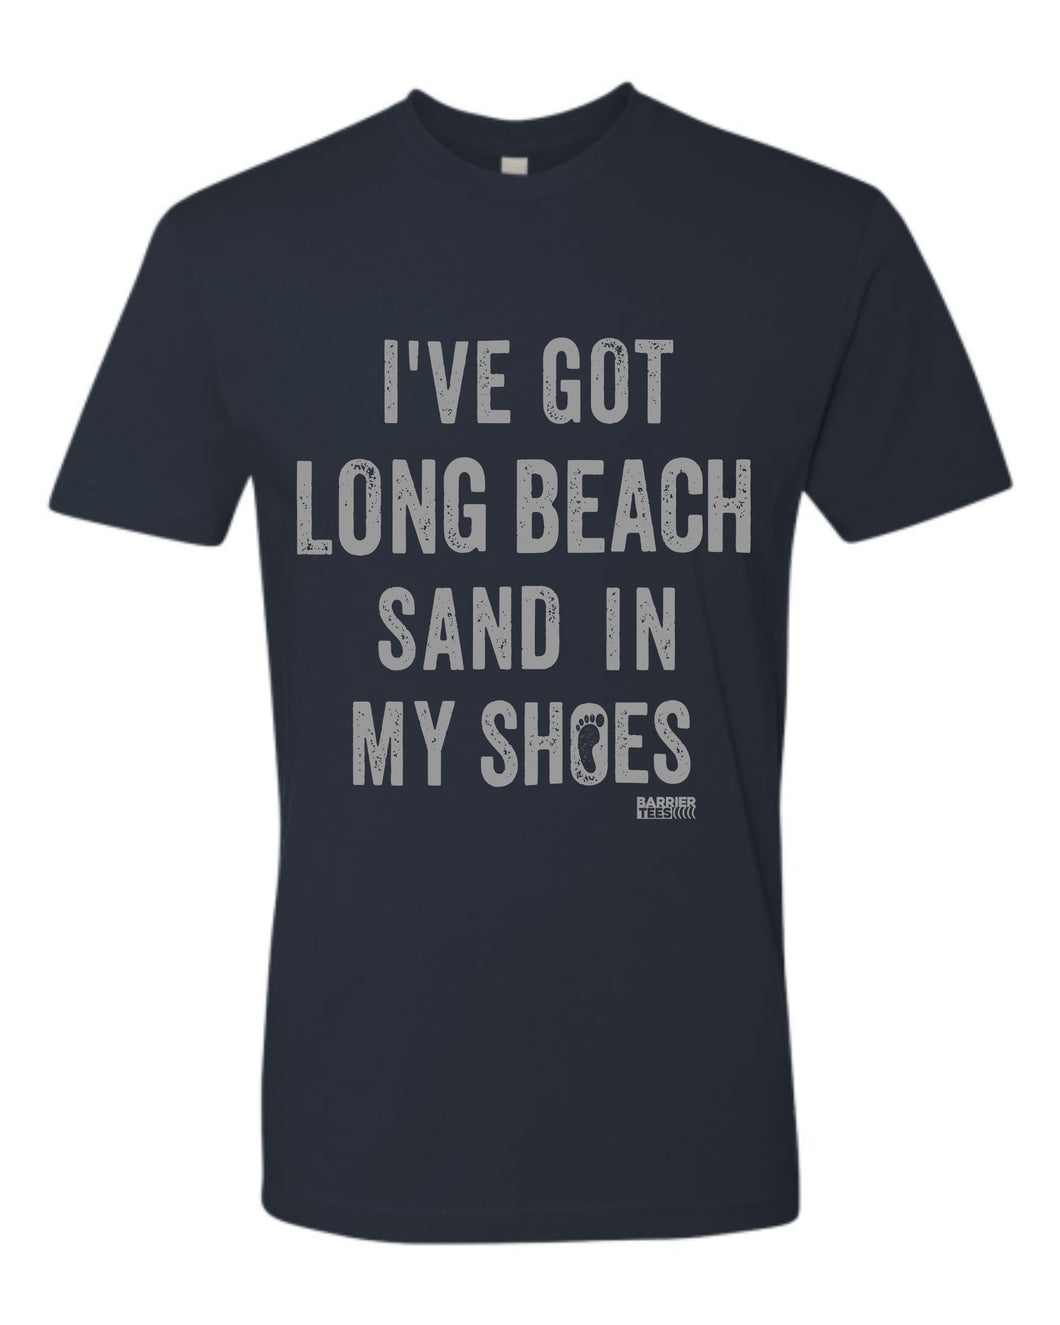 Unisex LB Sand in Shoes T-shirt